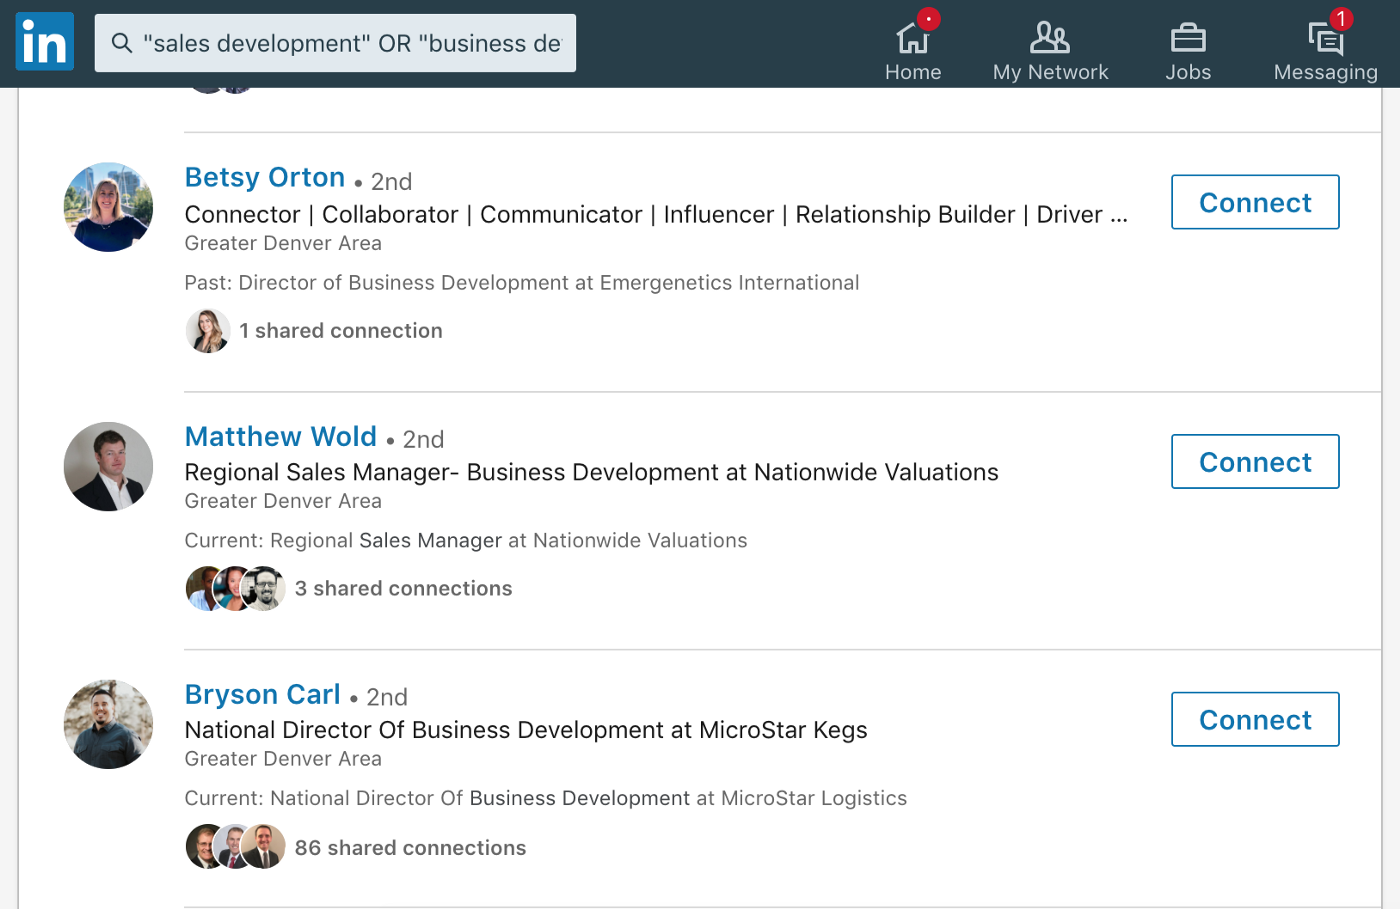 Linkedin Automation: How To Build Boolean Search Strings